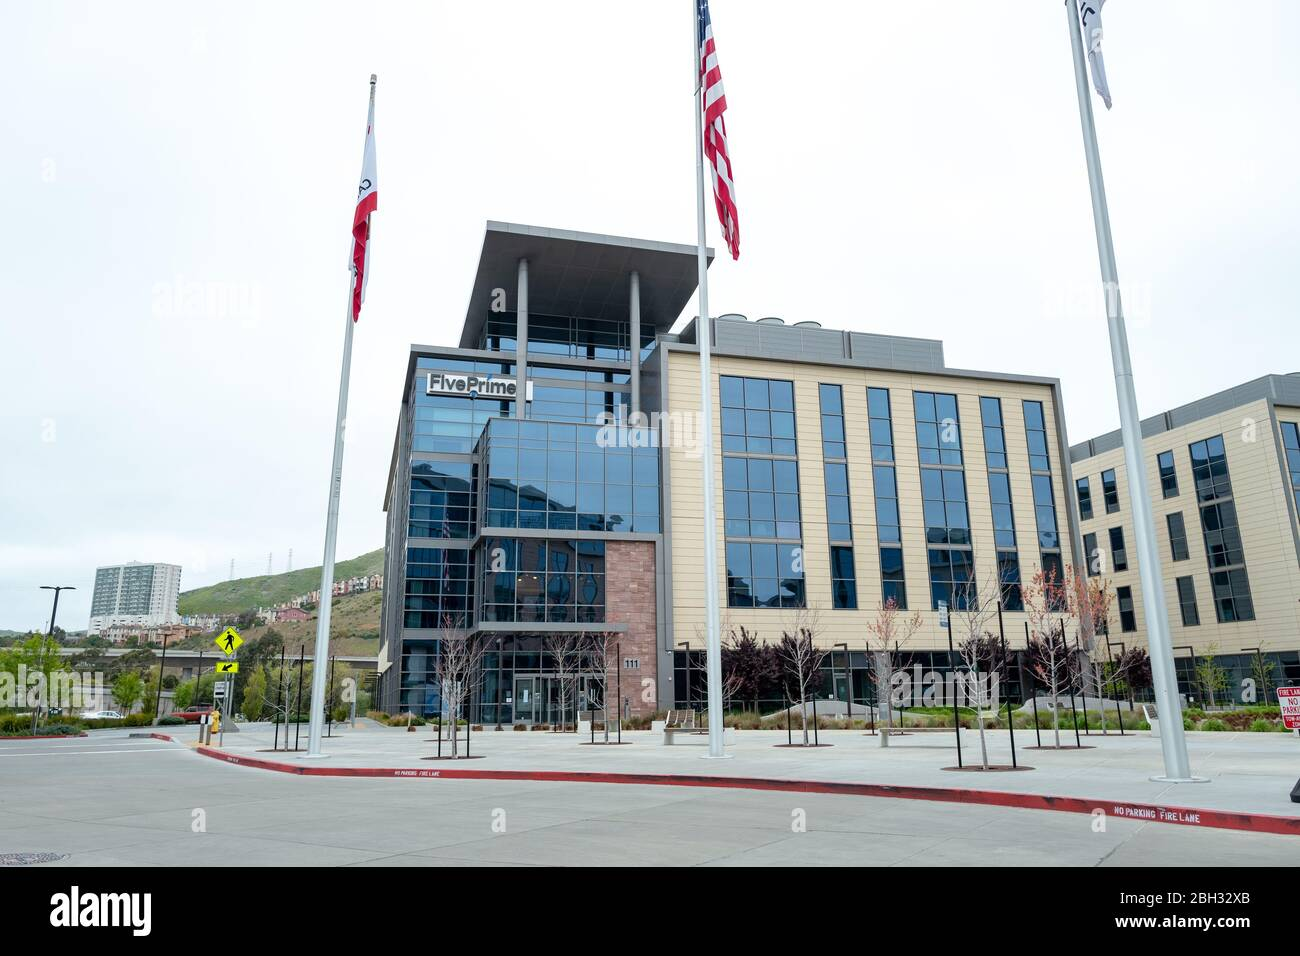 Facade with logo at office of Five Prime Therapeutics, South San Francisco, California, April 11, 2020. () Stock Photo